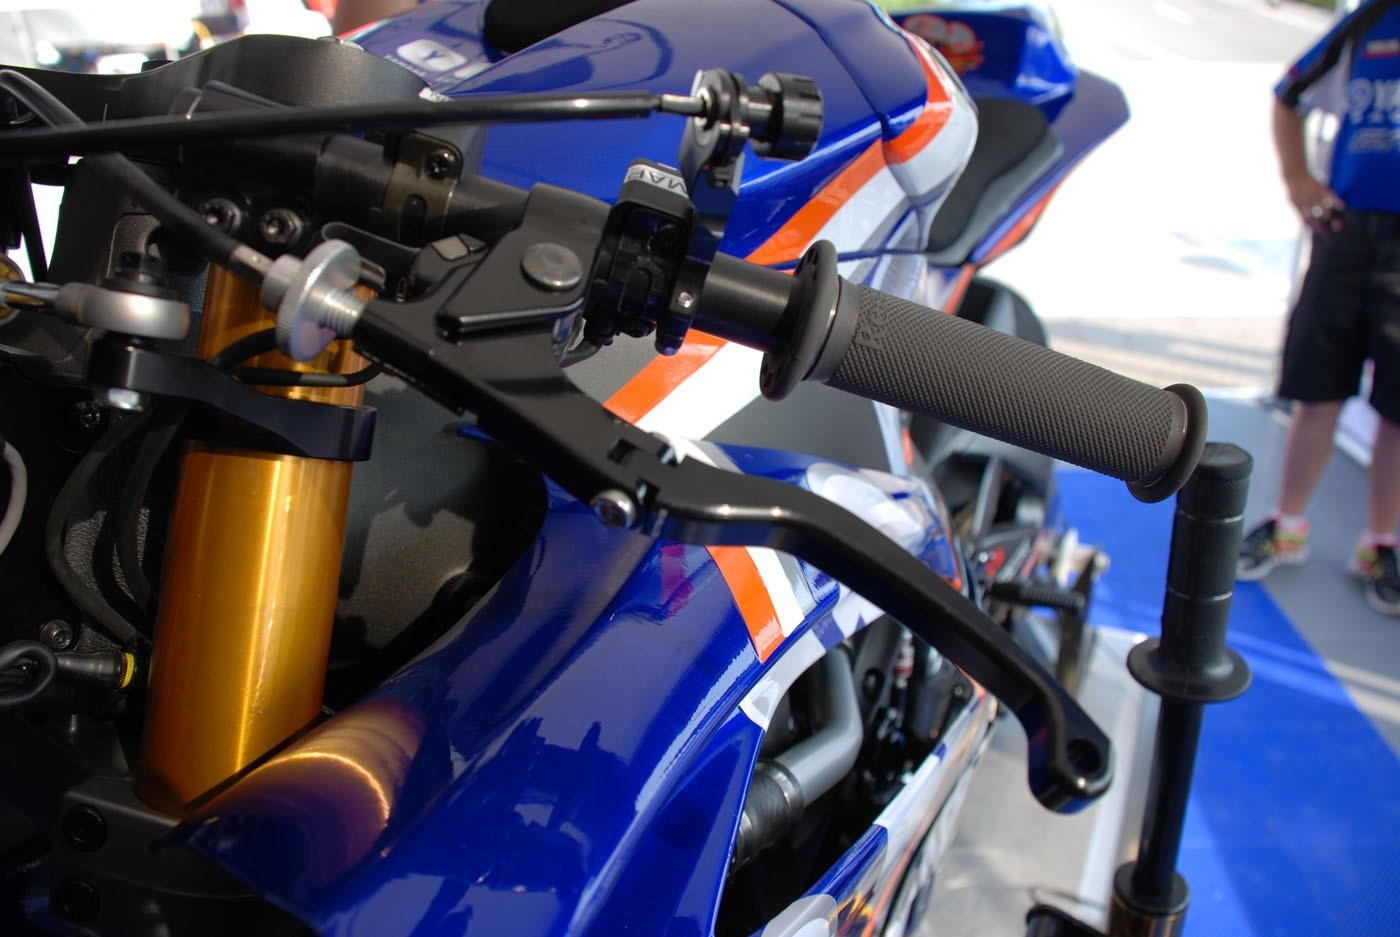 Galespeed Active Remote Adjuster and Bracket Set for Brembo and Galespeed Master Cylinders